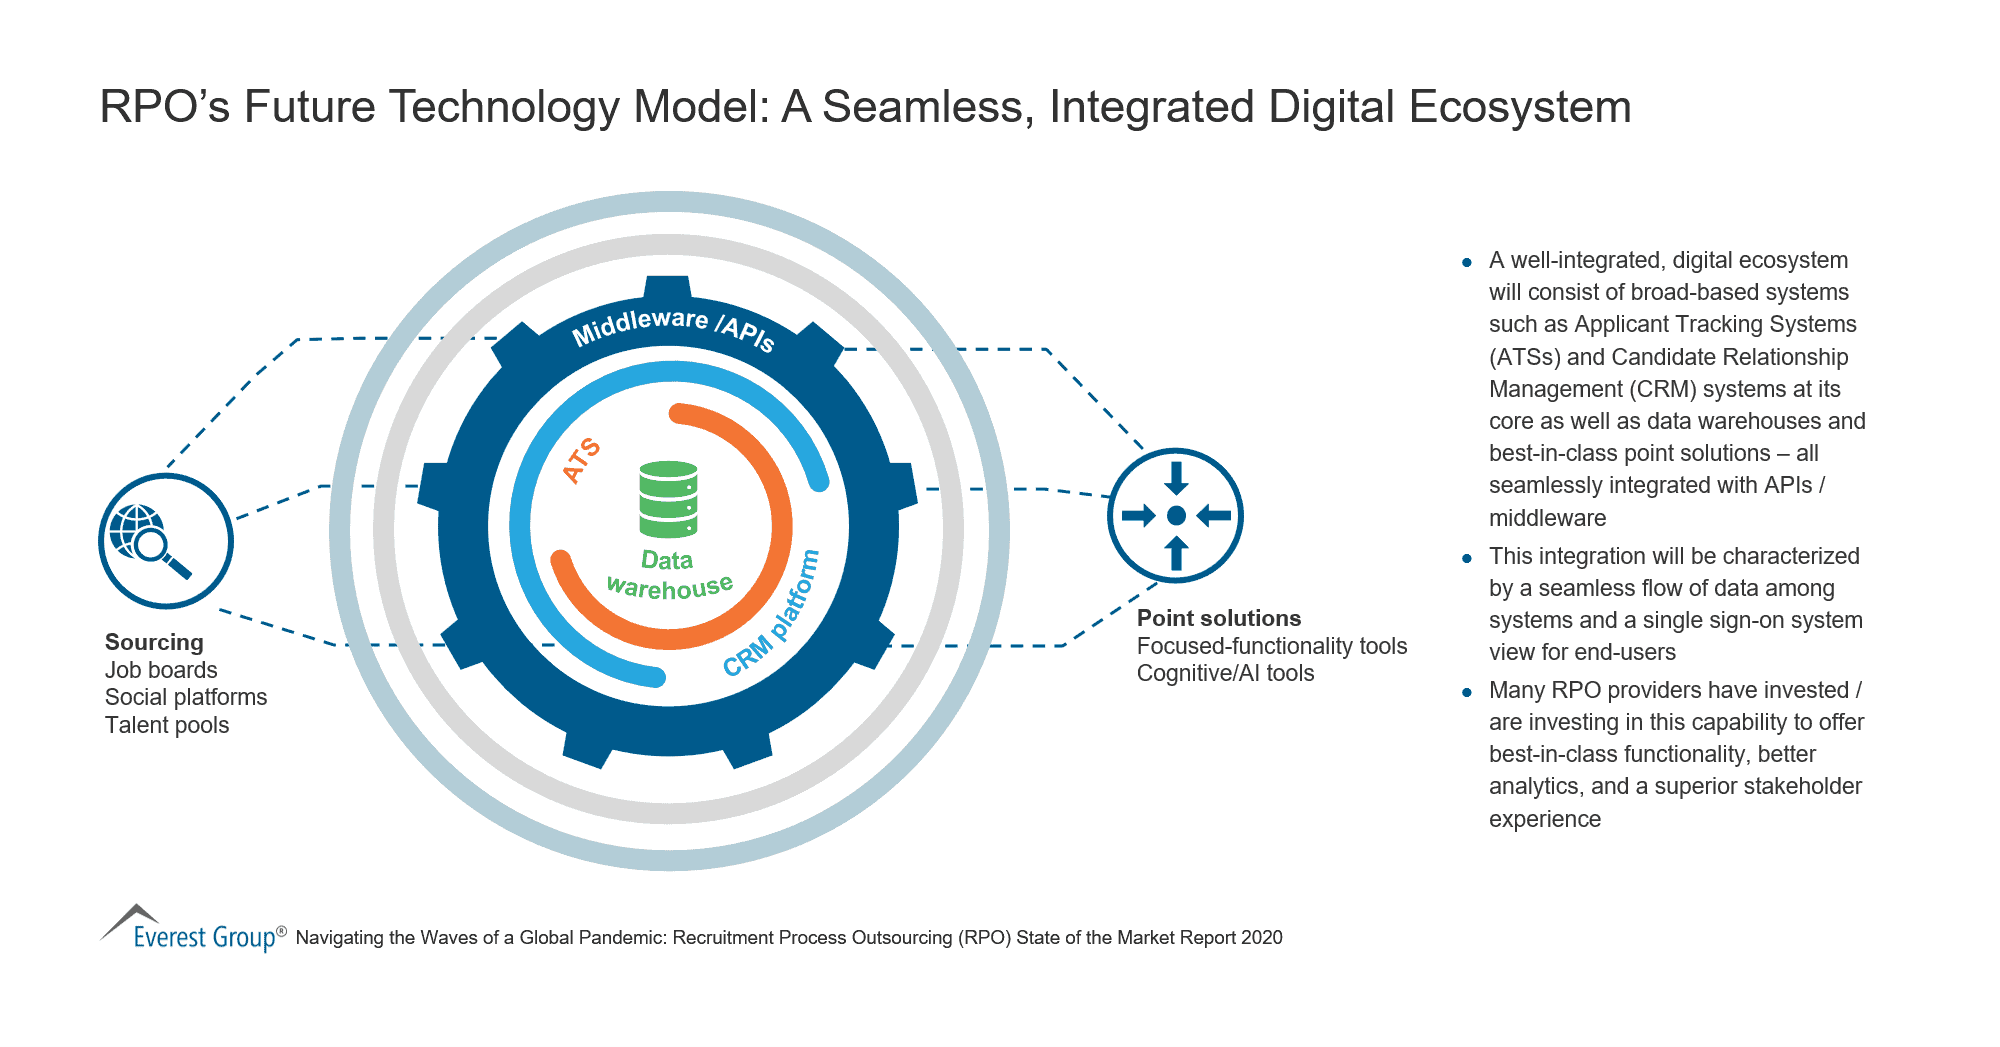 RPO's Future Technology Model - A Seamless, Integrated Digital Ecosystem